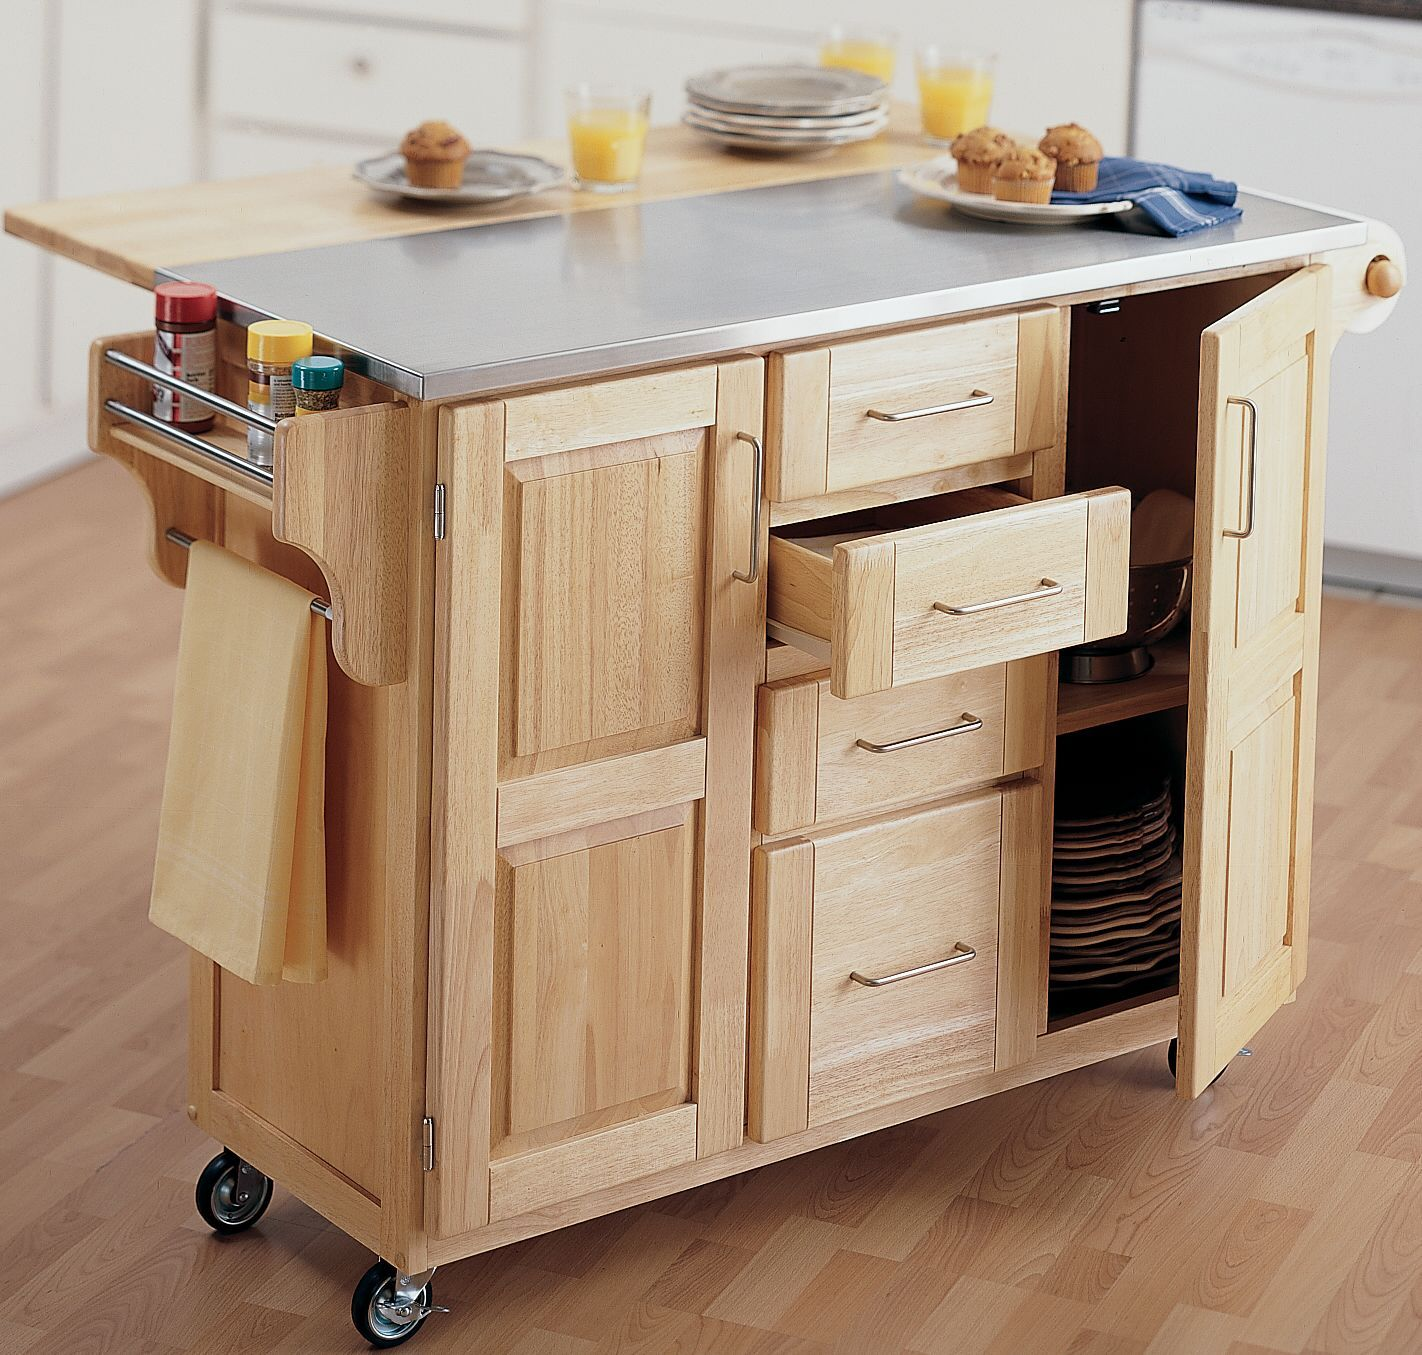 Drop Leaf Kitchen Island With Wine Rack » Thecadc.com & Drop Leaf Kitchen Island With Wine Rack » Thecadc.com | KITCHEN 8 ... islam-shia.org